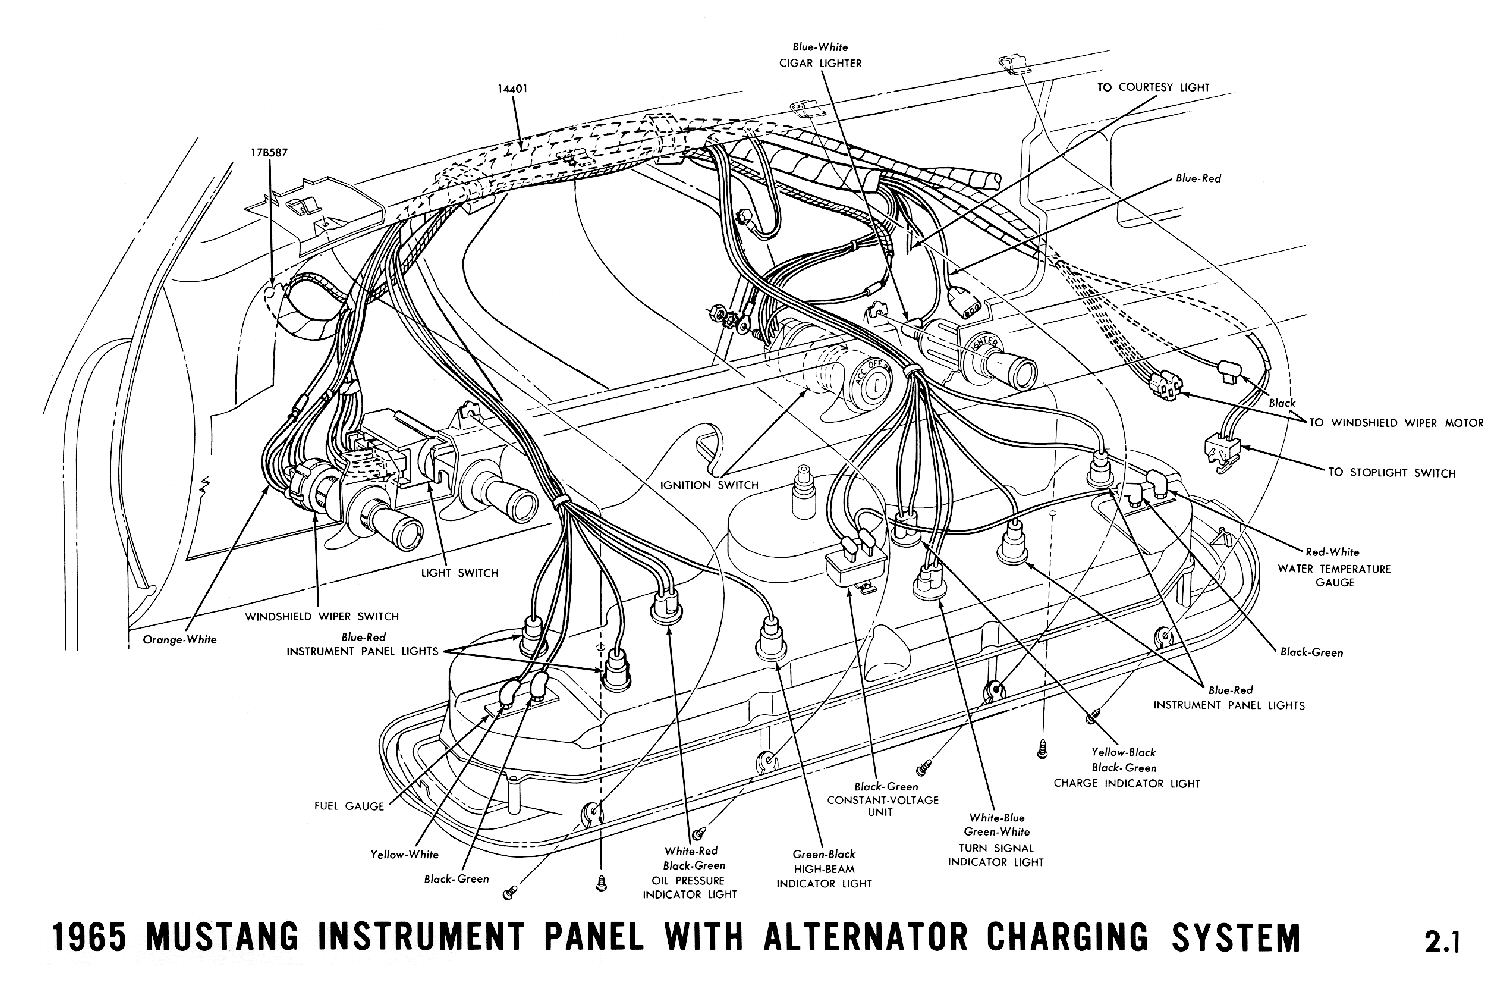 1965 Mustang Wiring Diagrams on air conditioner wiring diagrams